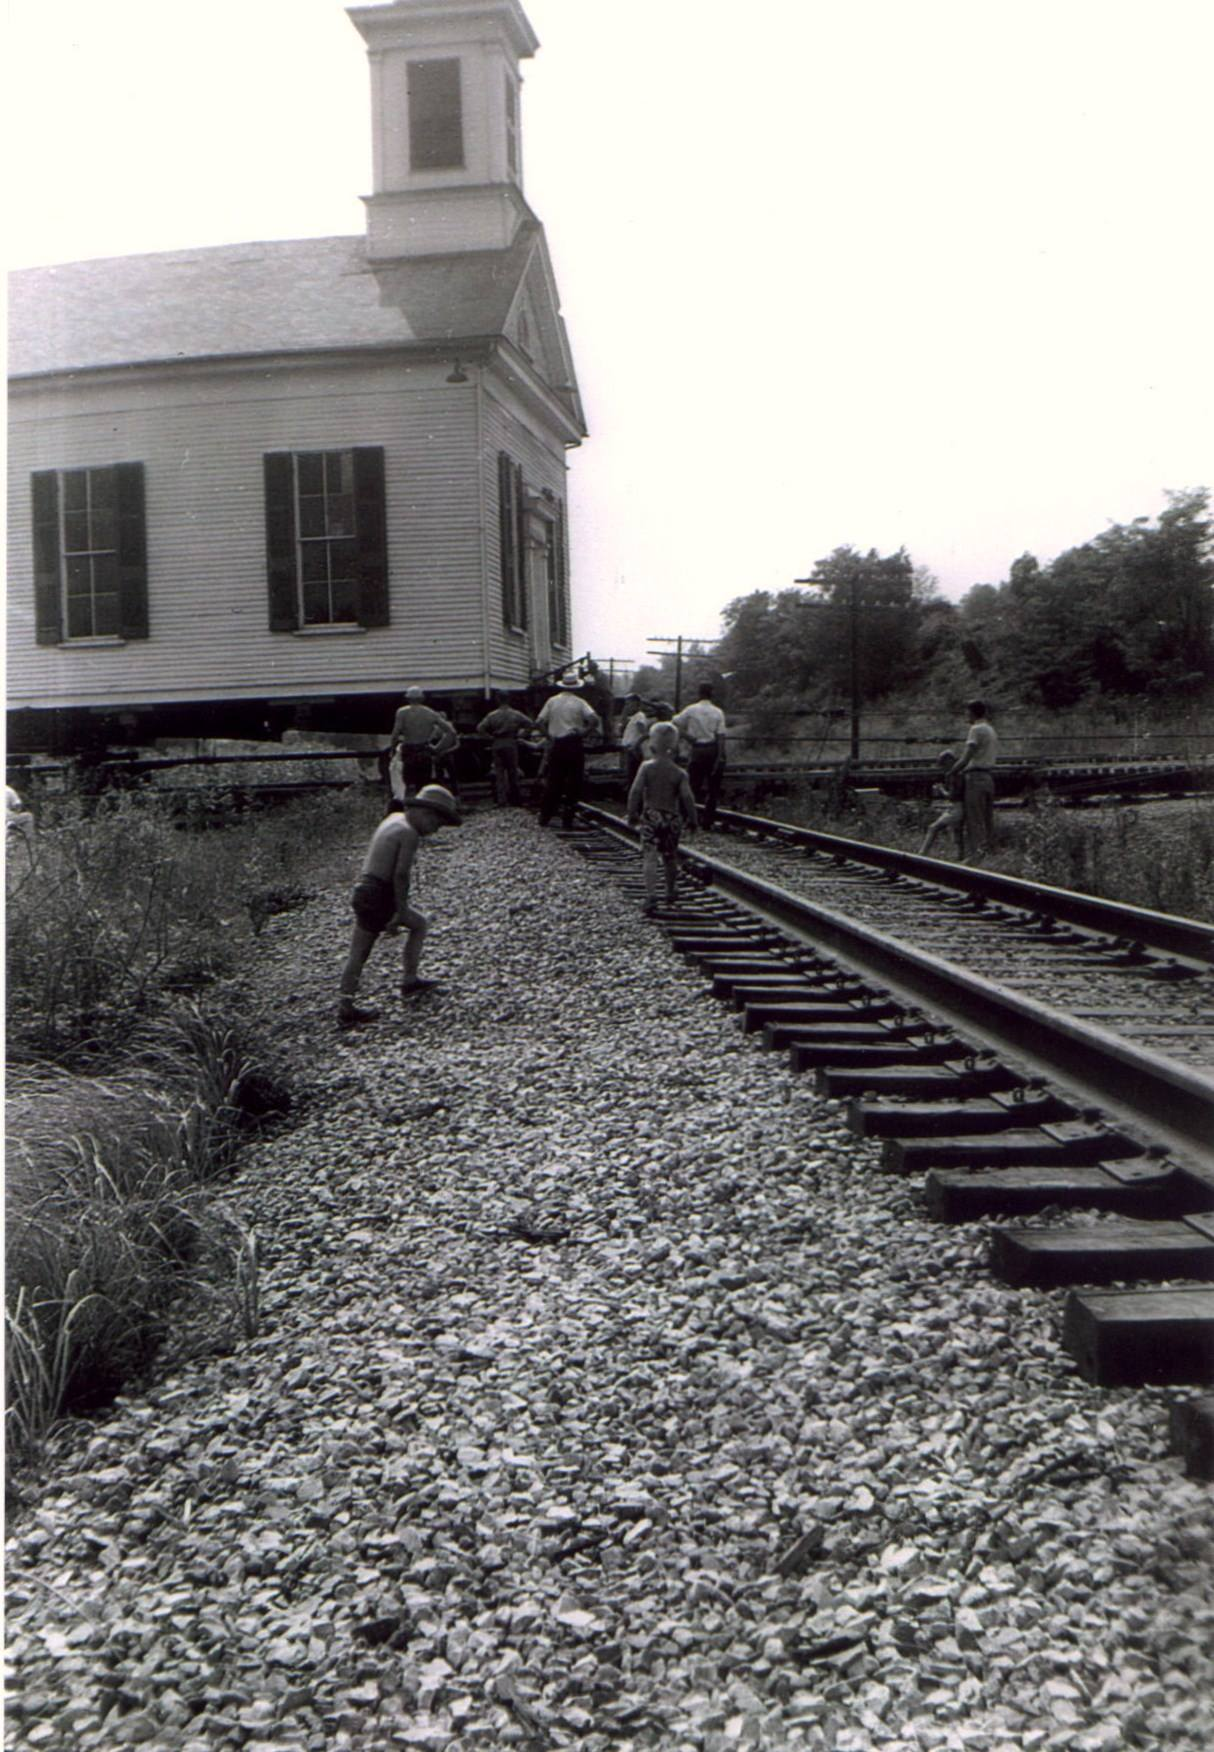 Scene from the church's move in 1953. It is clearly seen how the church was moved intact.